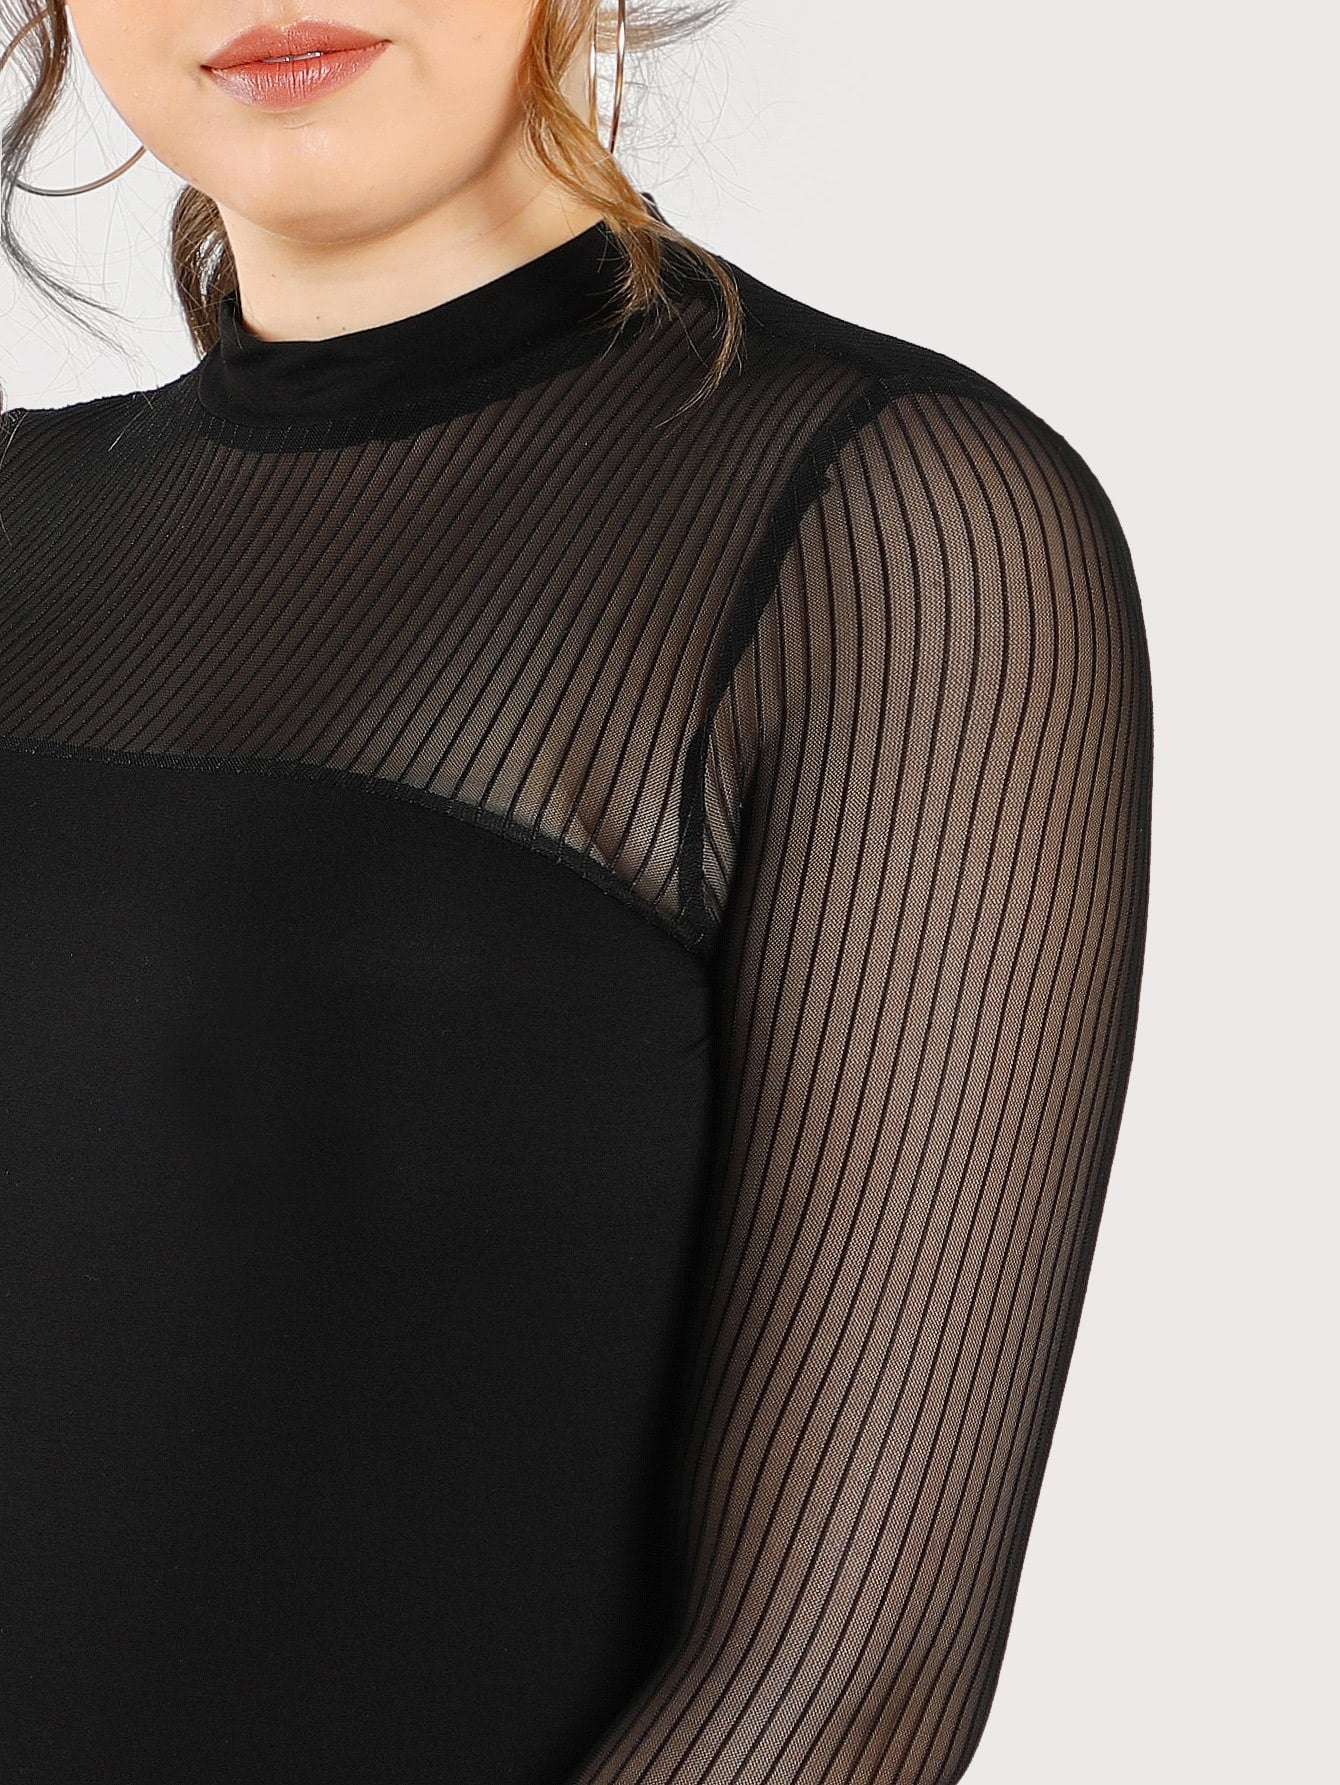 Plus Size Black Transparent Mesh Long Sleeve Top